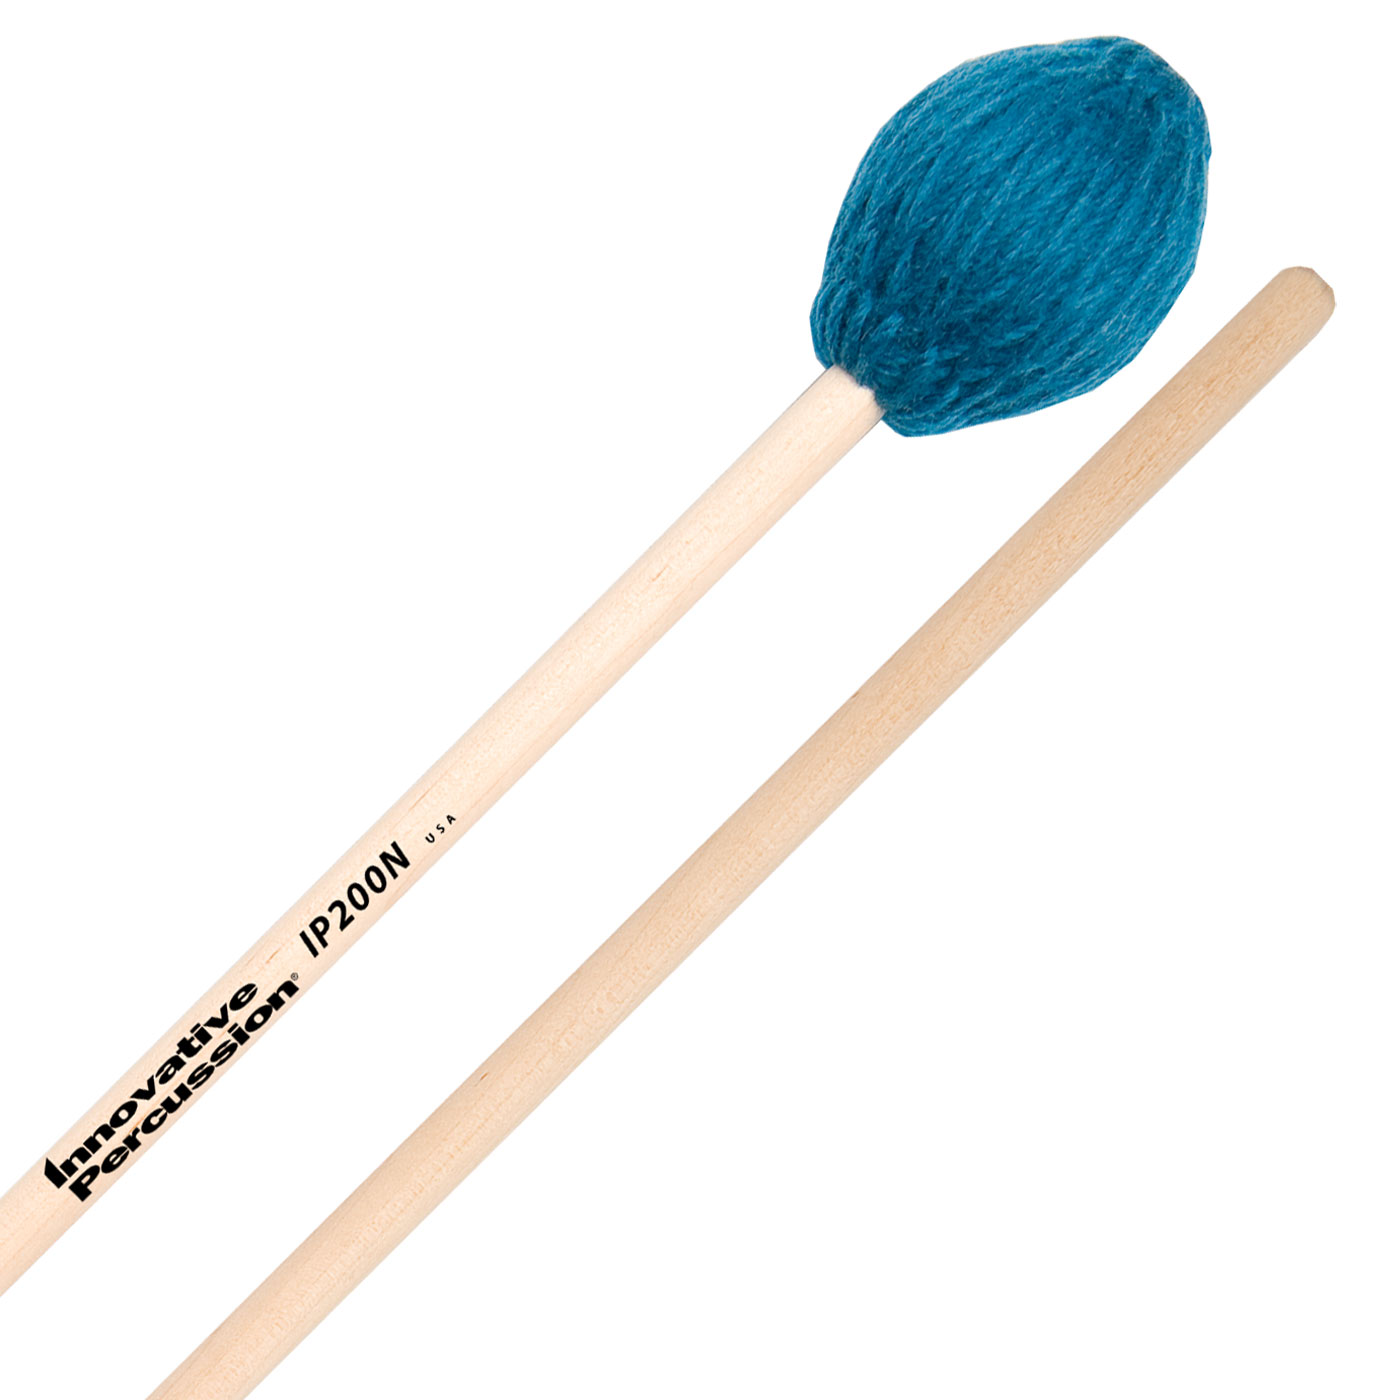 Innovative Percussion IP200N Soloist Series Medium Soft Marimba Mallets with Natural Birch Shafts